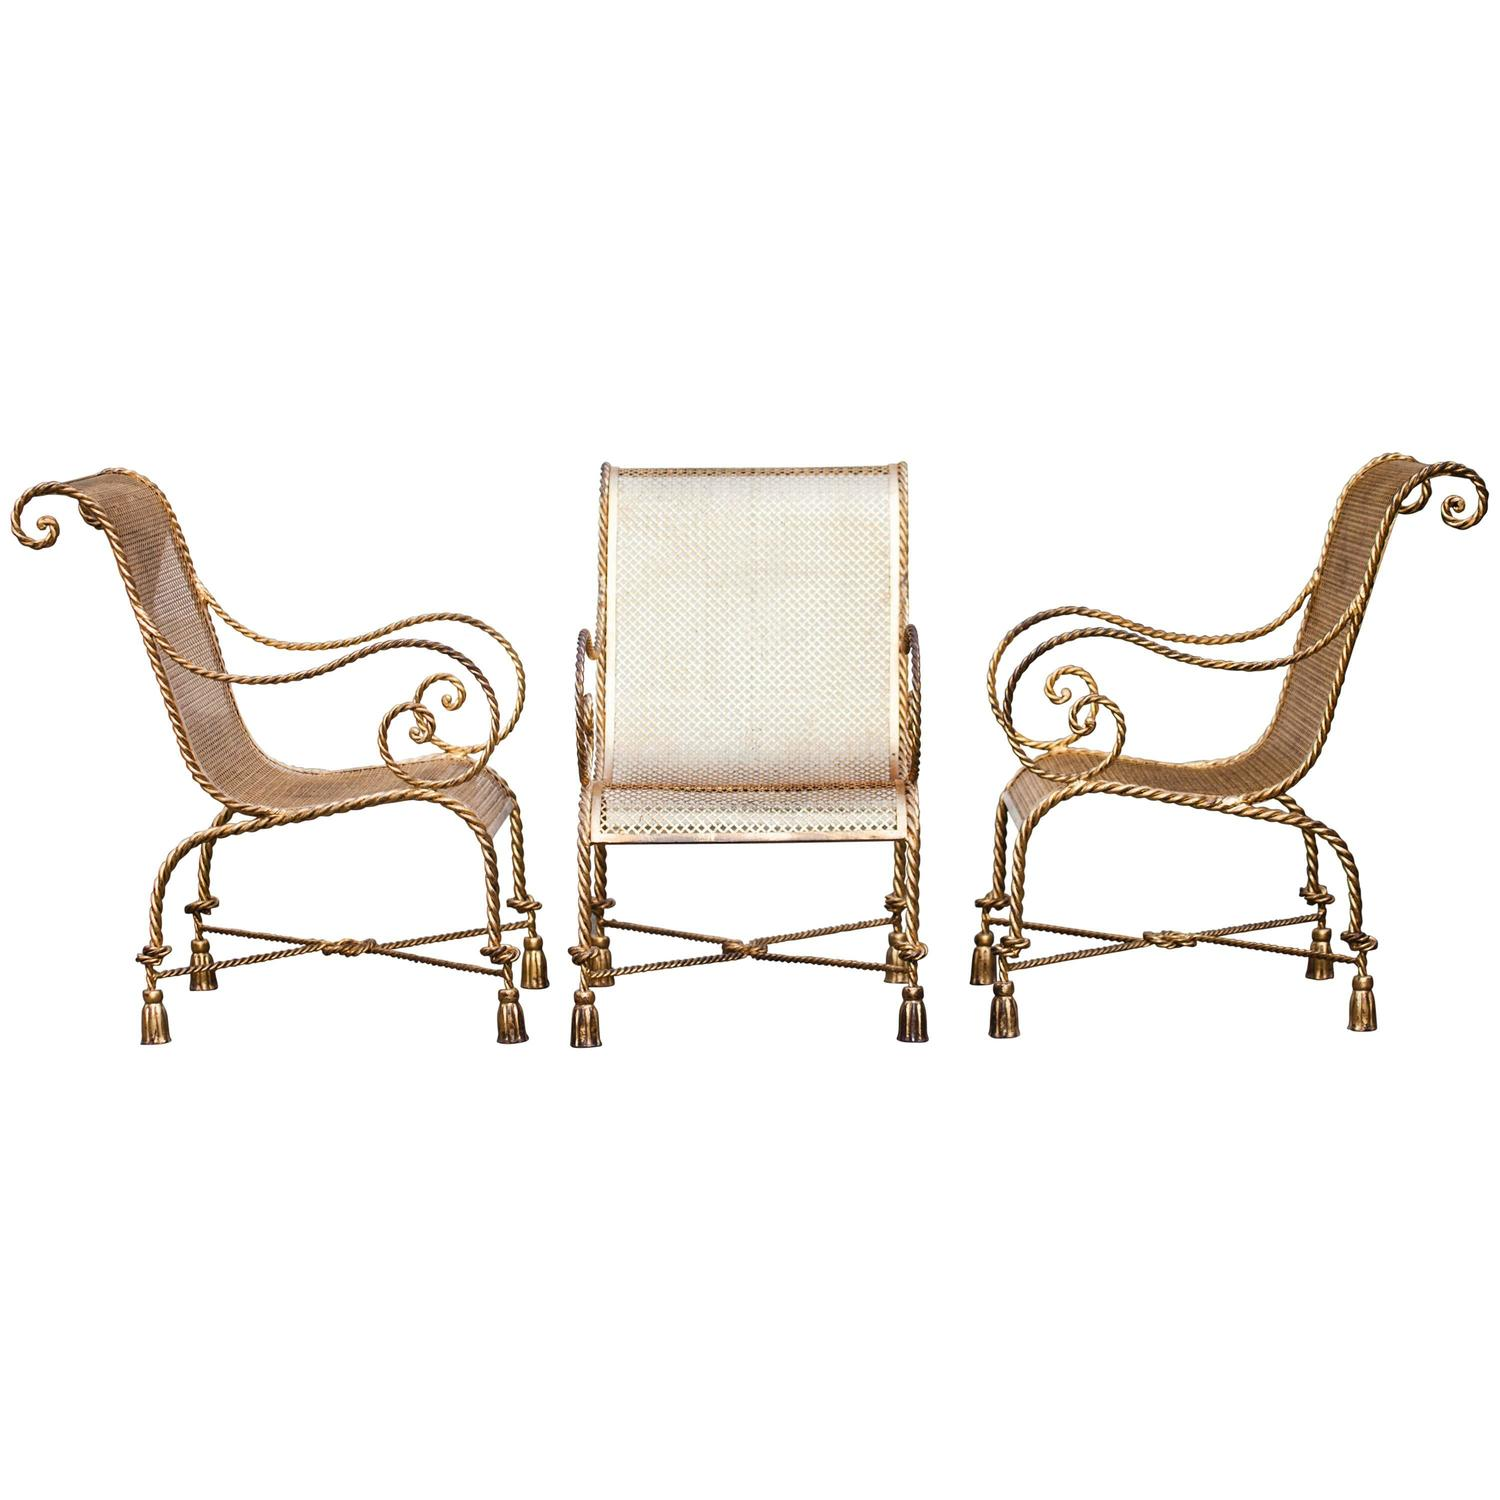 Hollywood Regency Glam X Base High Back Throne Chair For Sale at